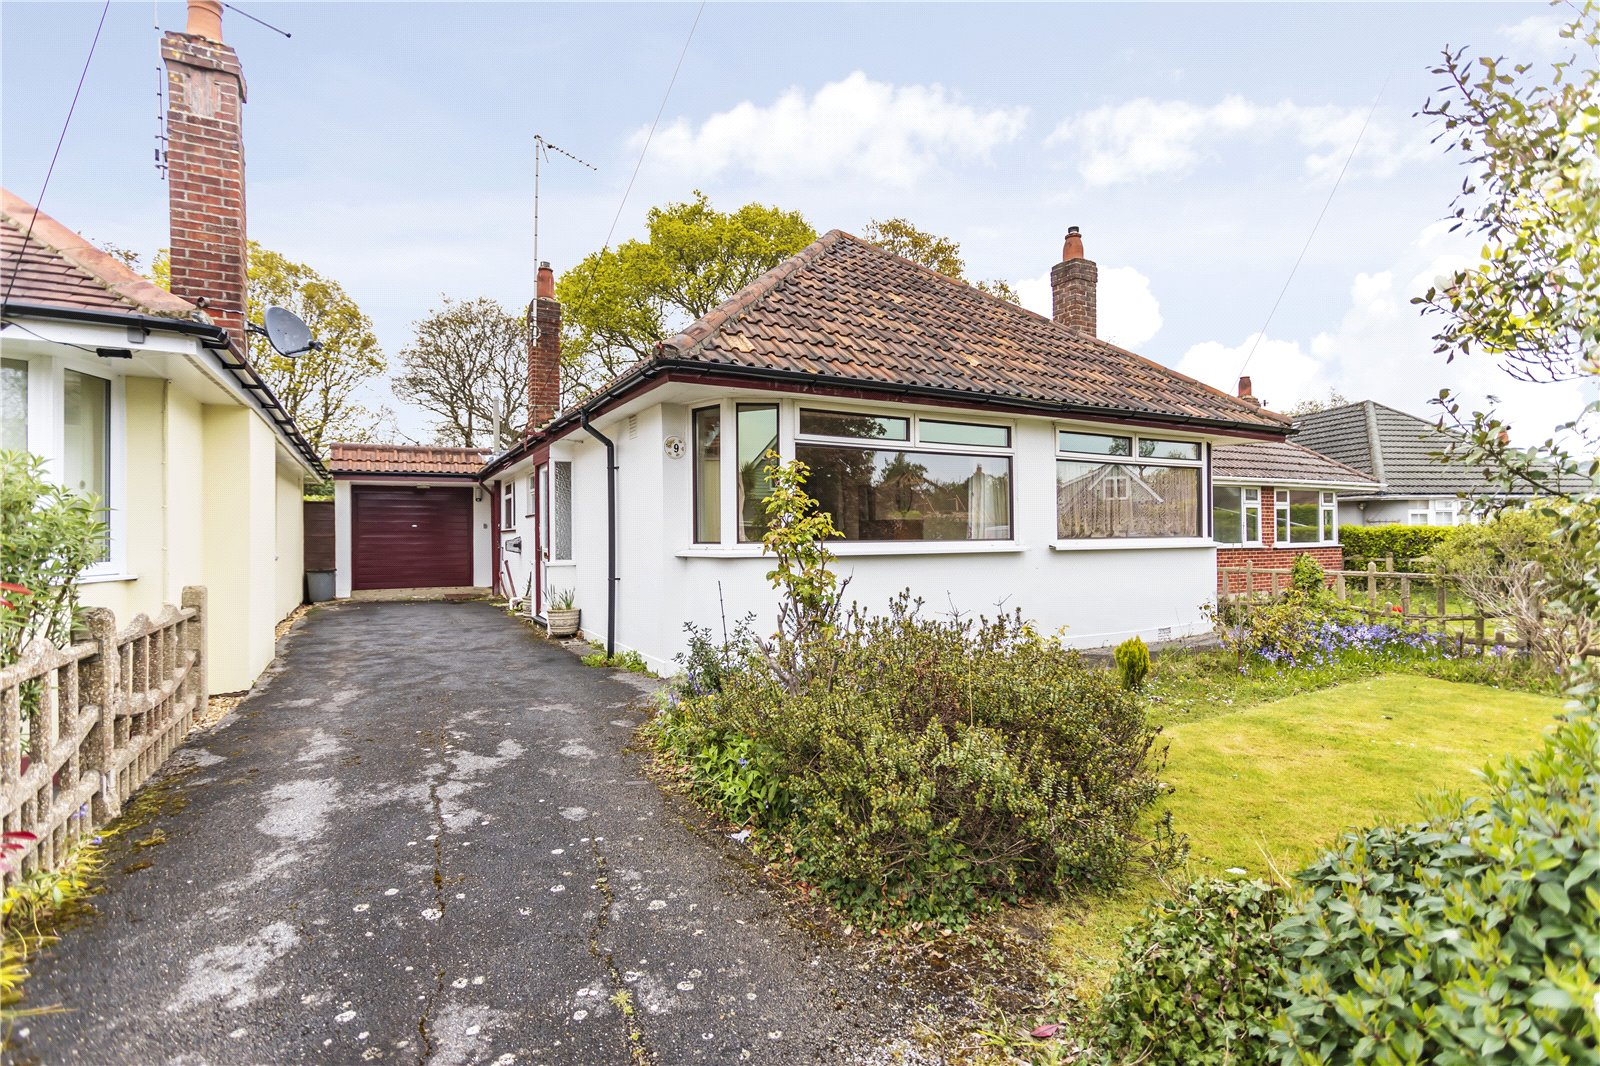 3 bed bungalow for sale in Mill Hill Close, Lower Parkstone - Property Image 1